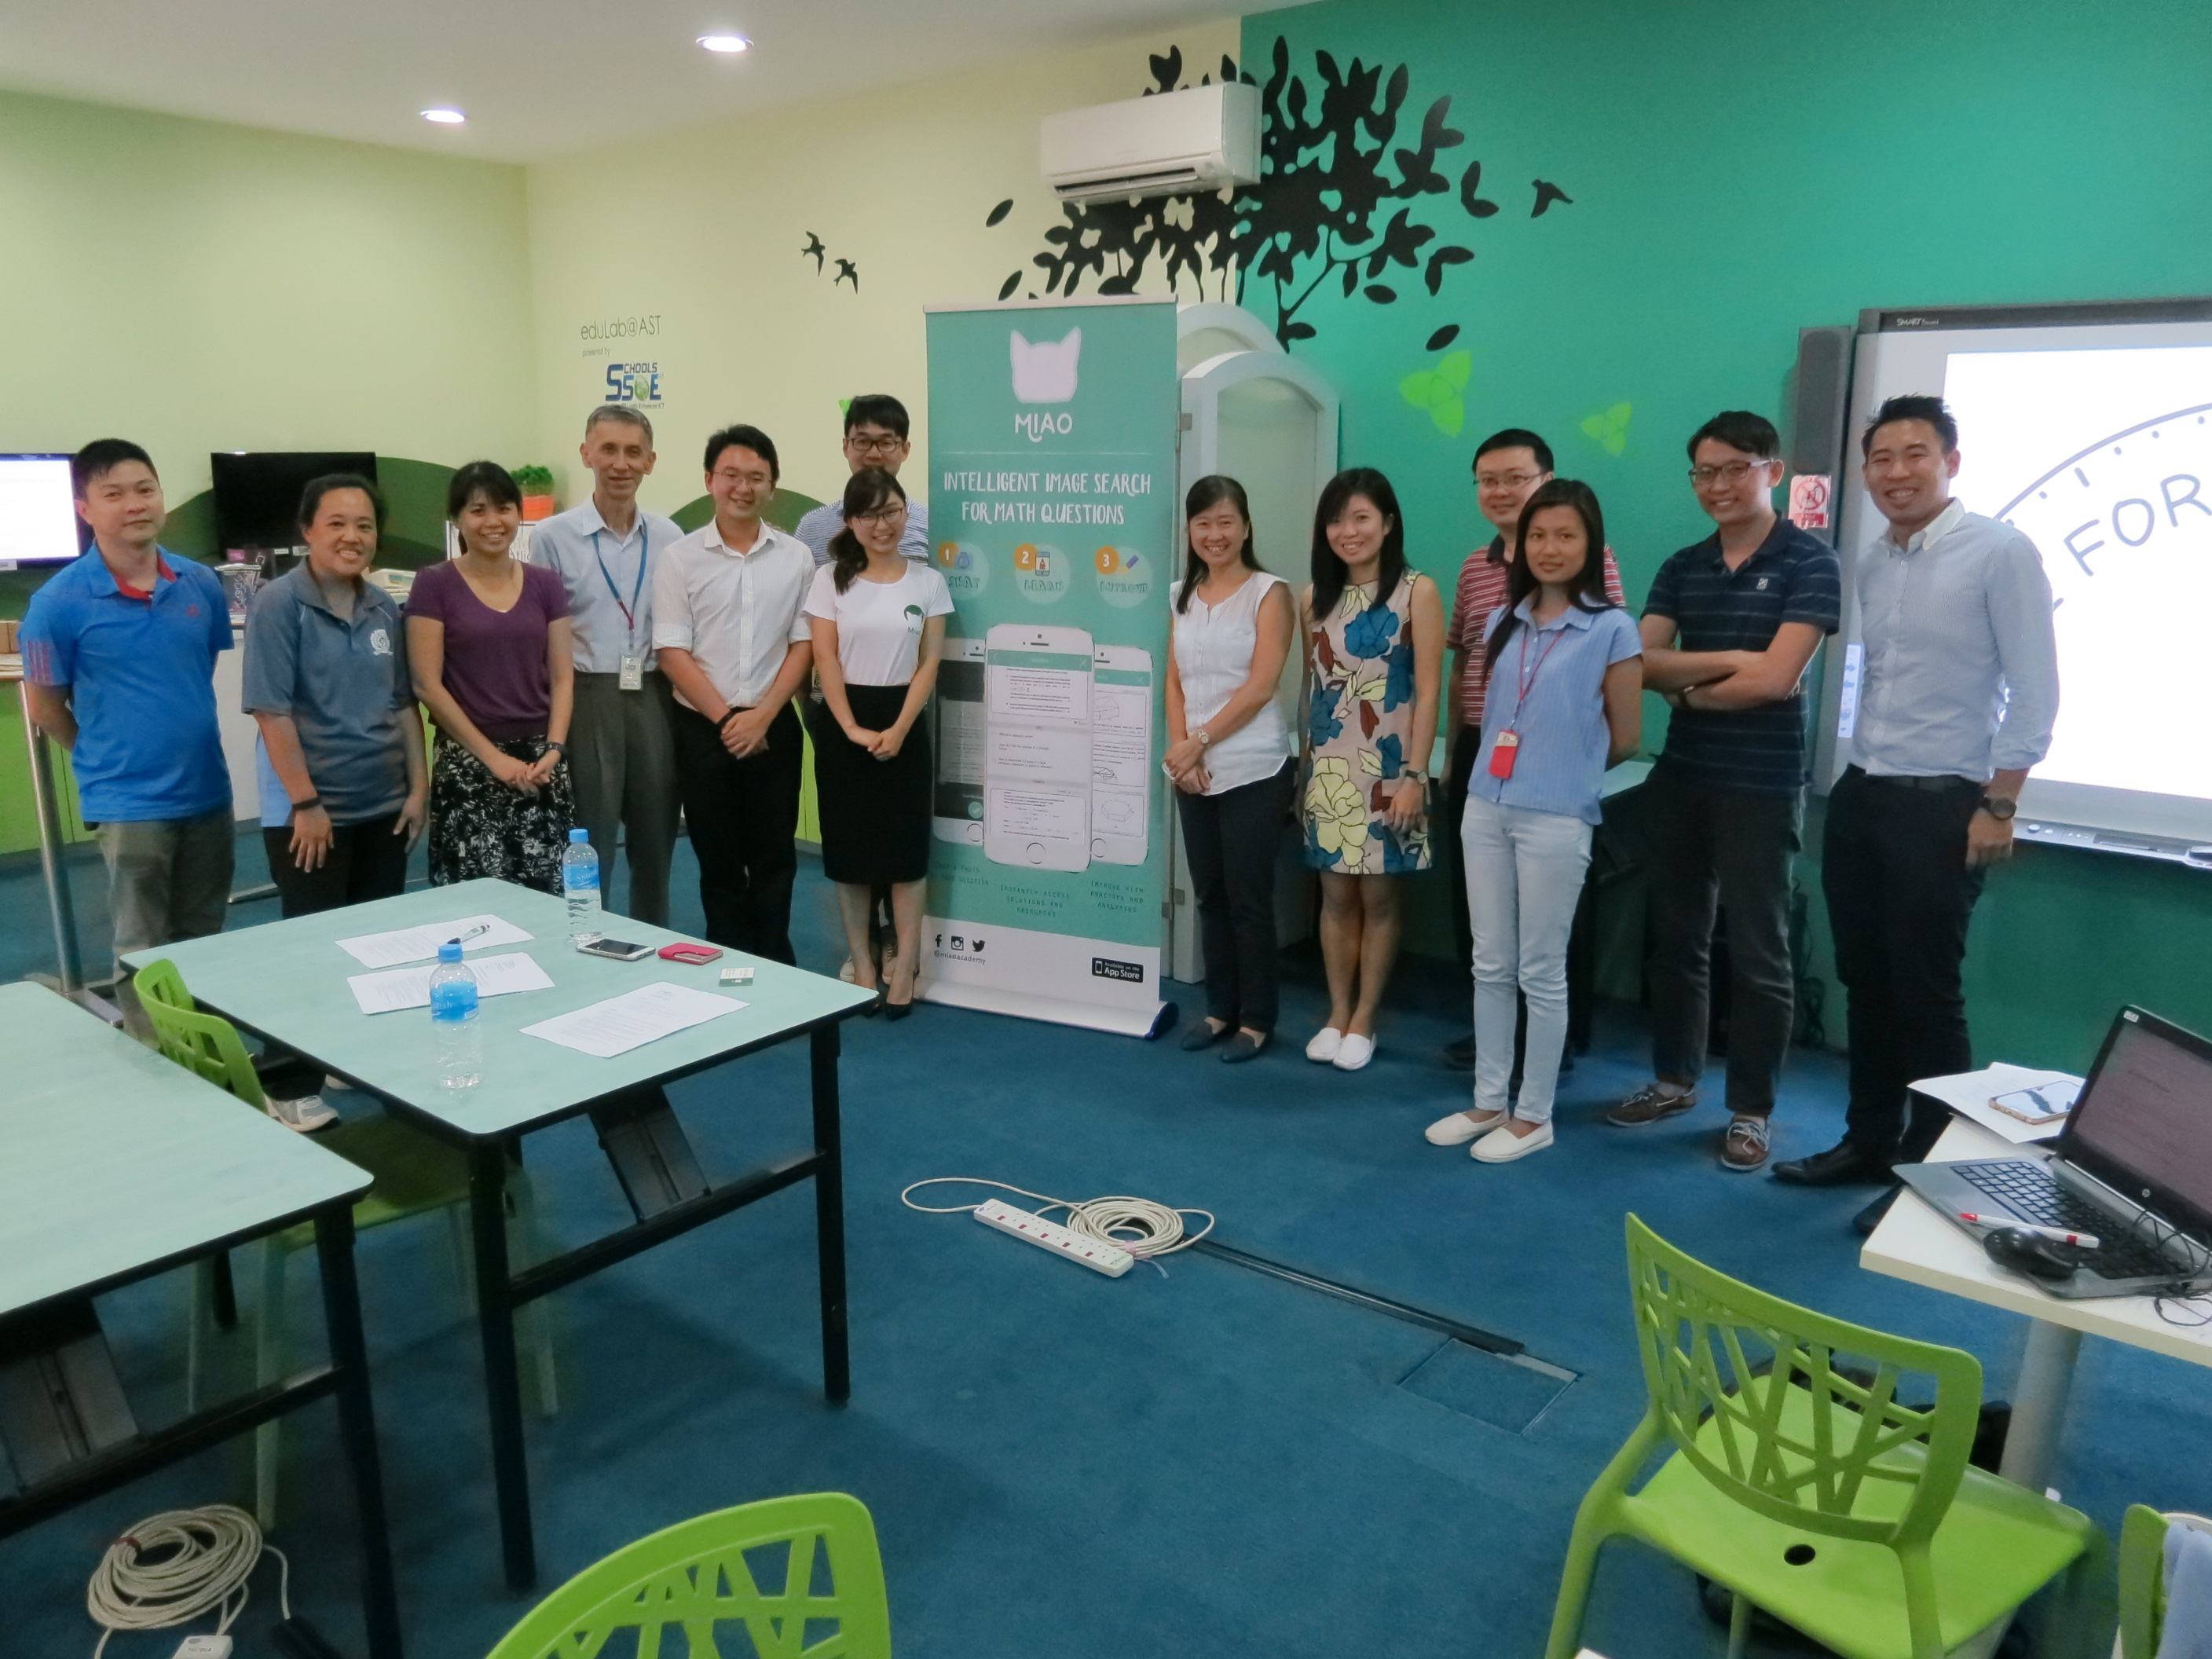 Miao at EduLab @ Academy of Singapore Teachers!